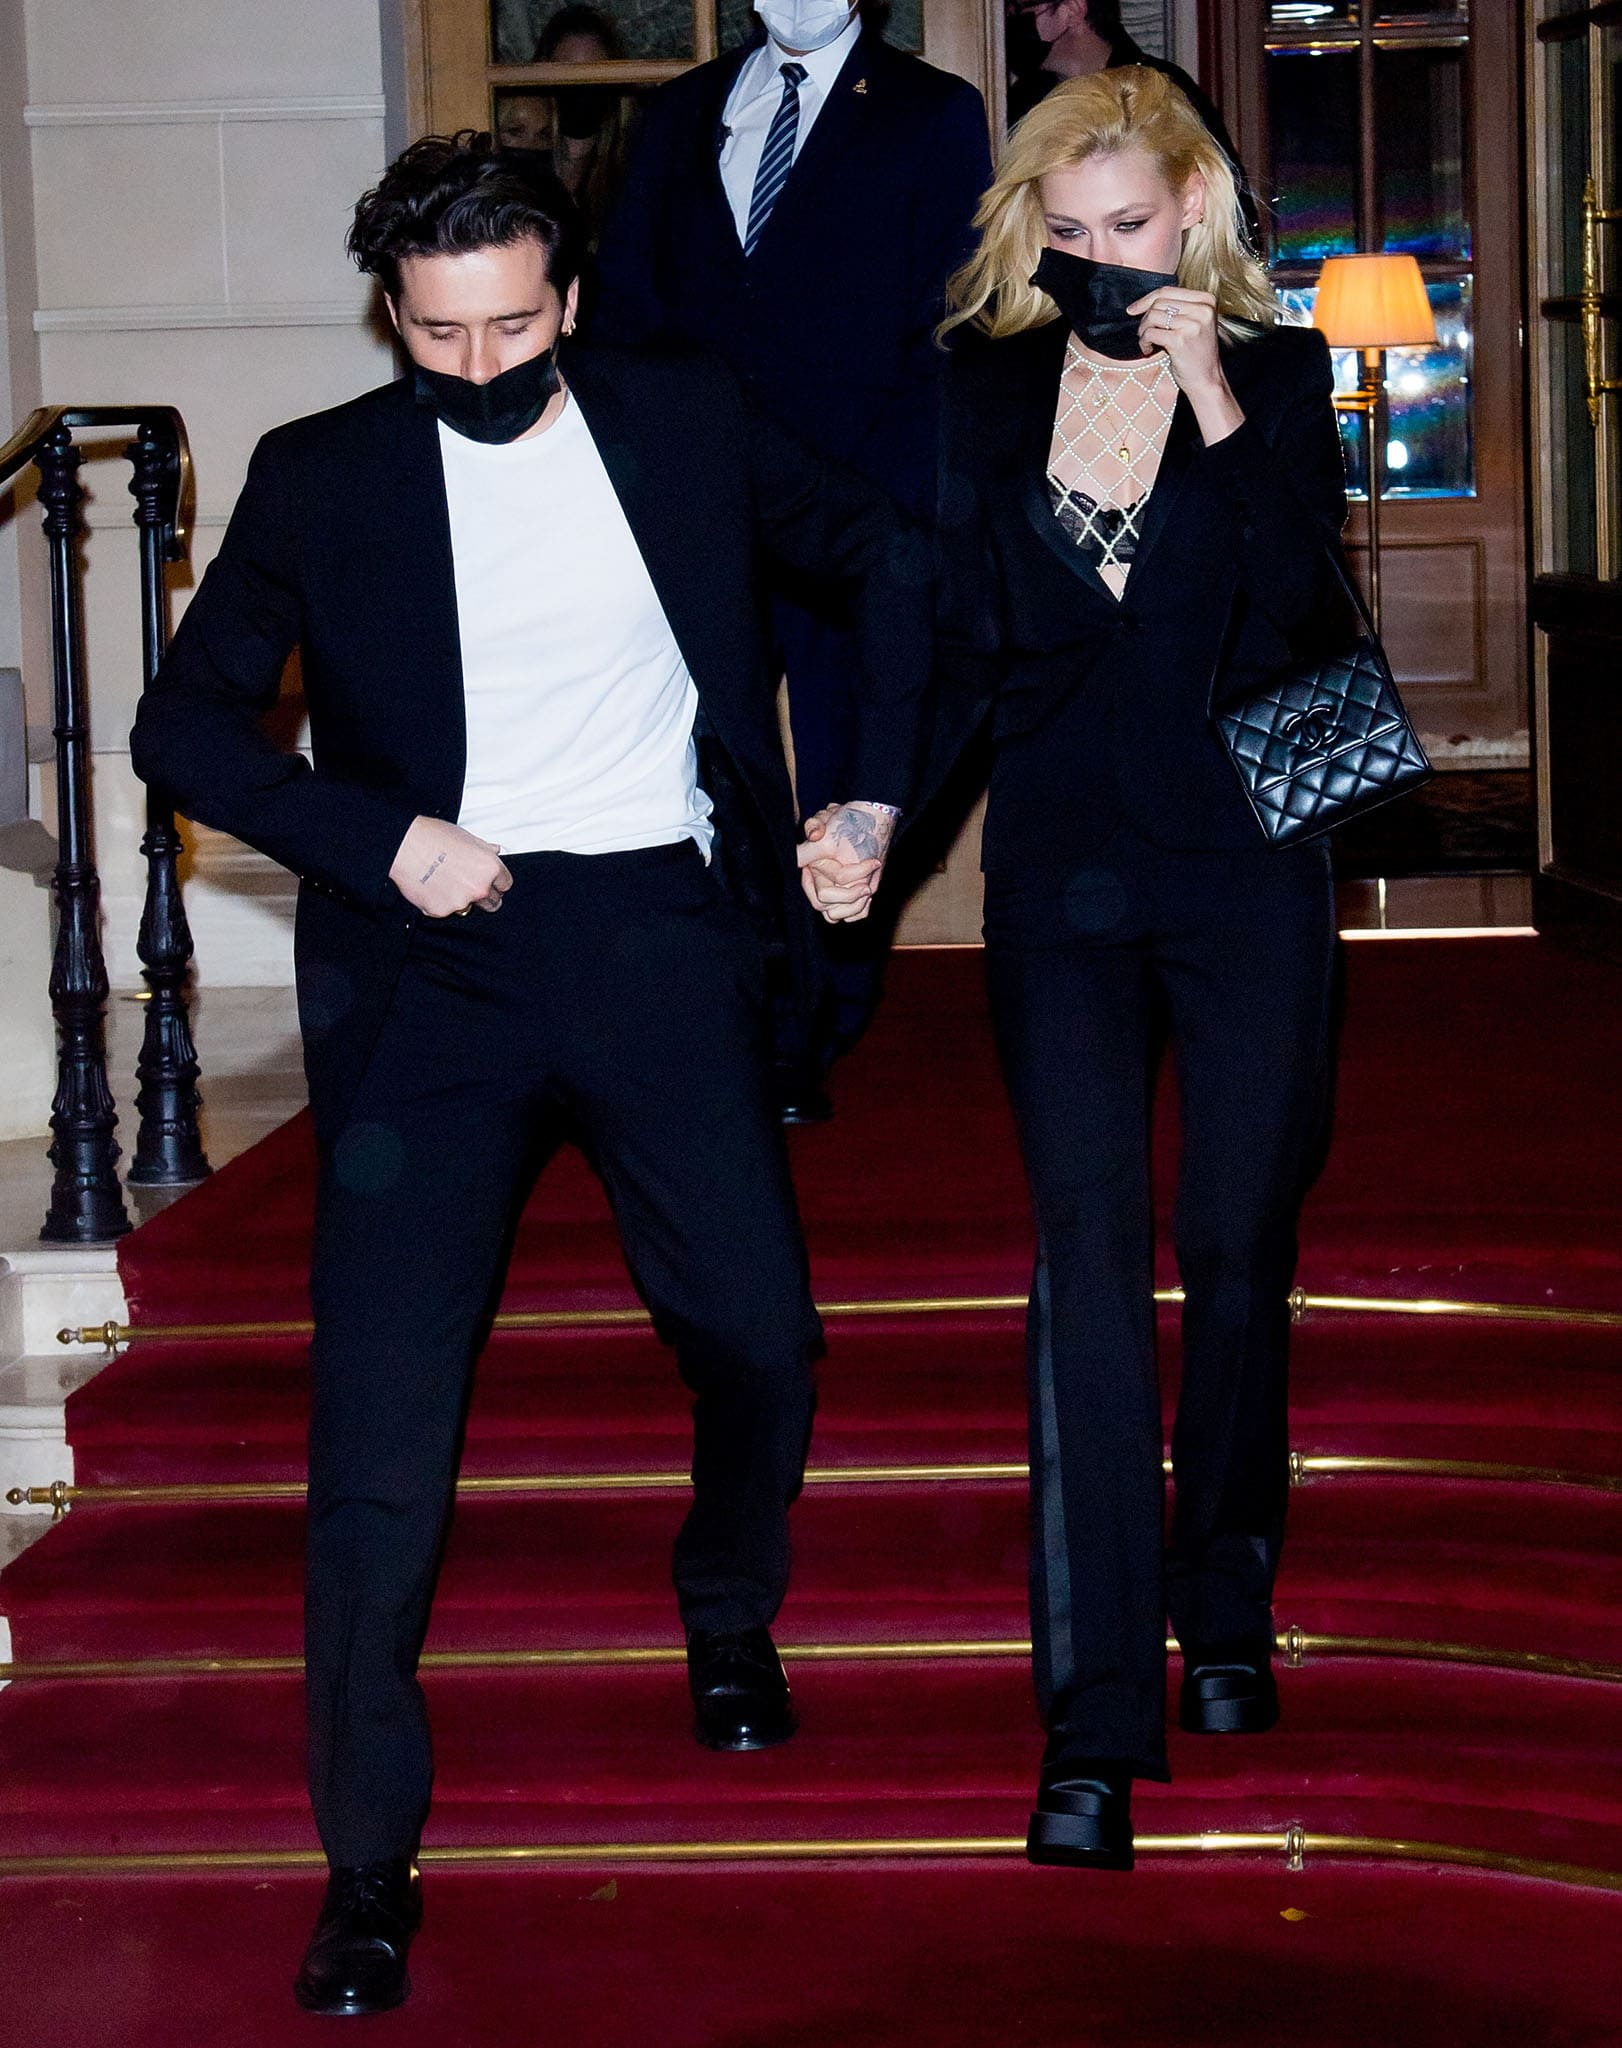 Brooklyn Beckham and Nicola Peltz leaving Ritz hotel in Paris in matching black suits on October 2, 2021